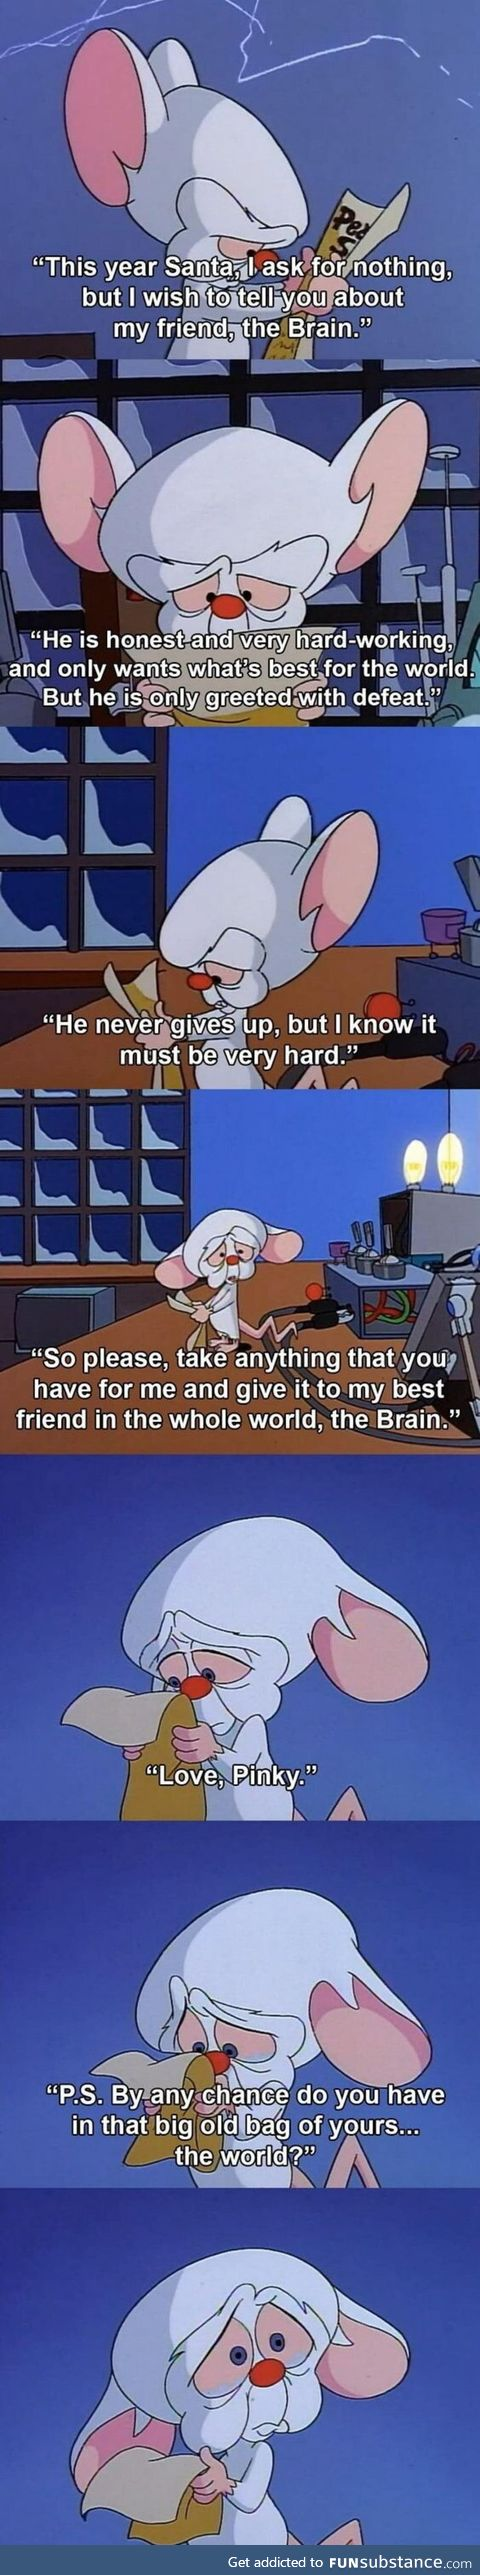 Yay for the Brain